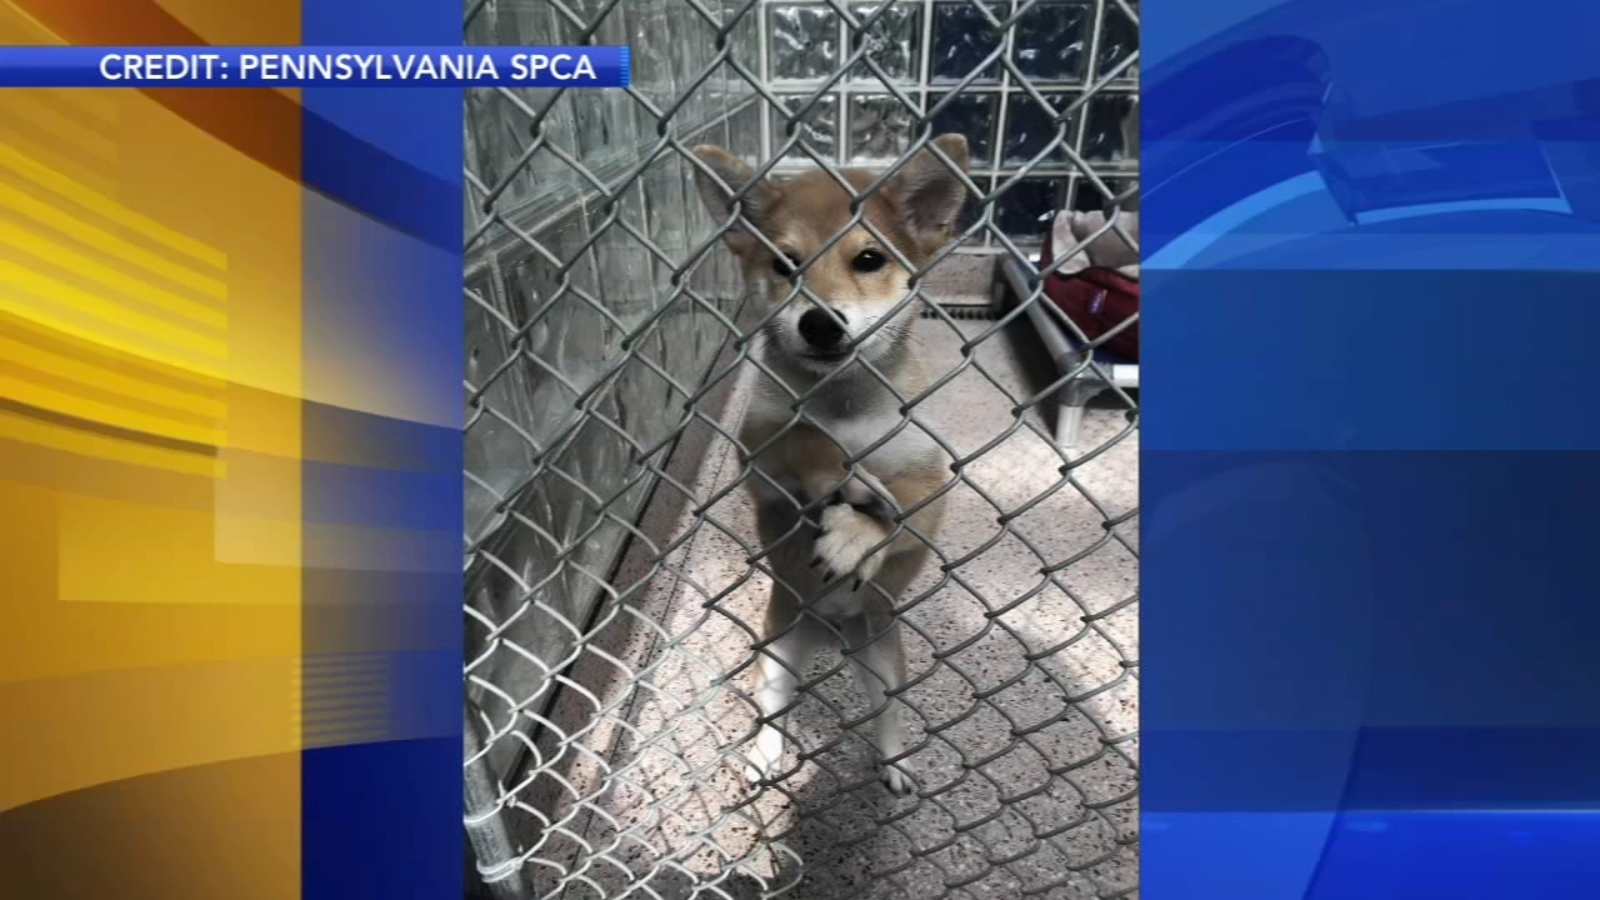 Arrest made in theft of dog from SPCA; reward offered for return of dog